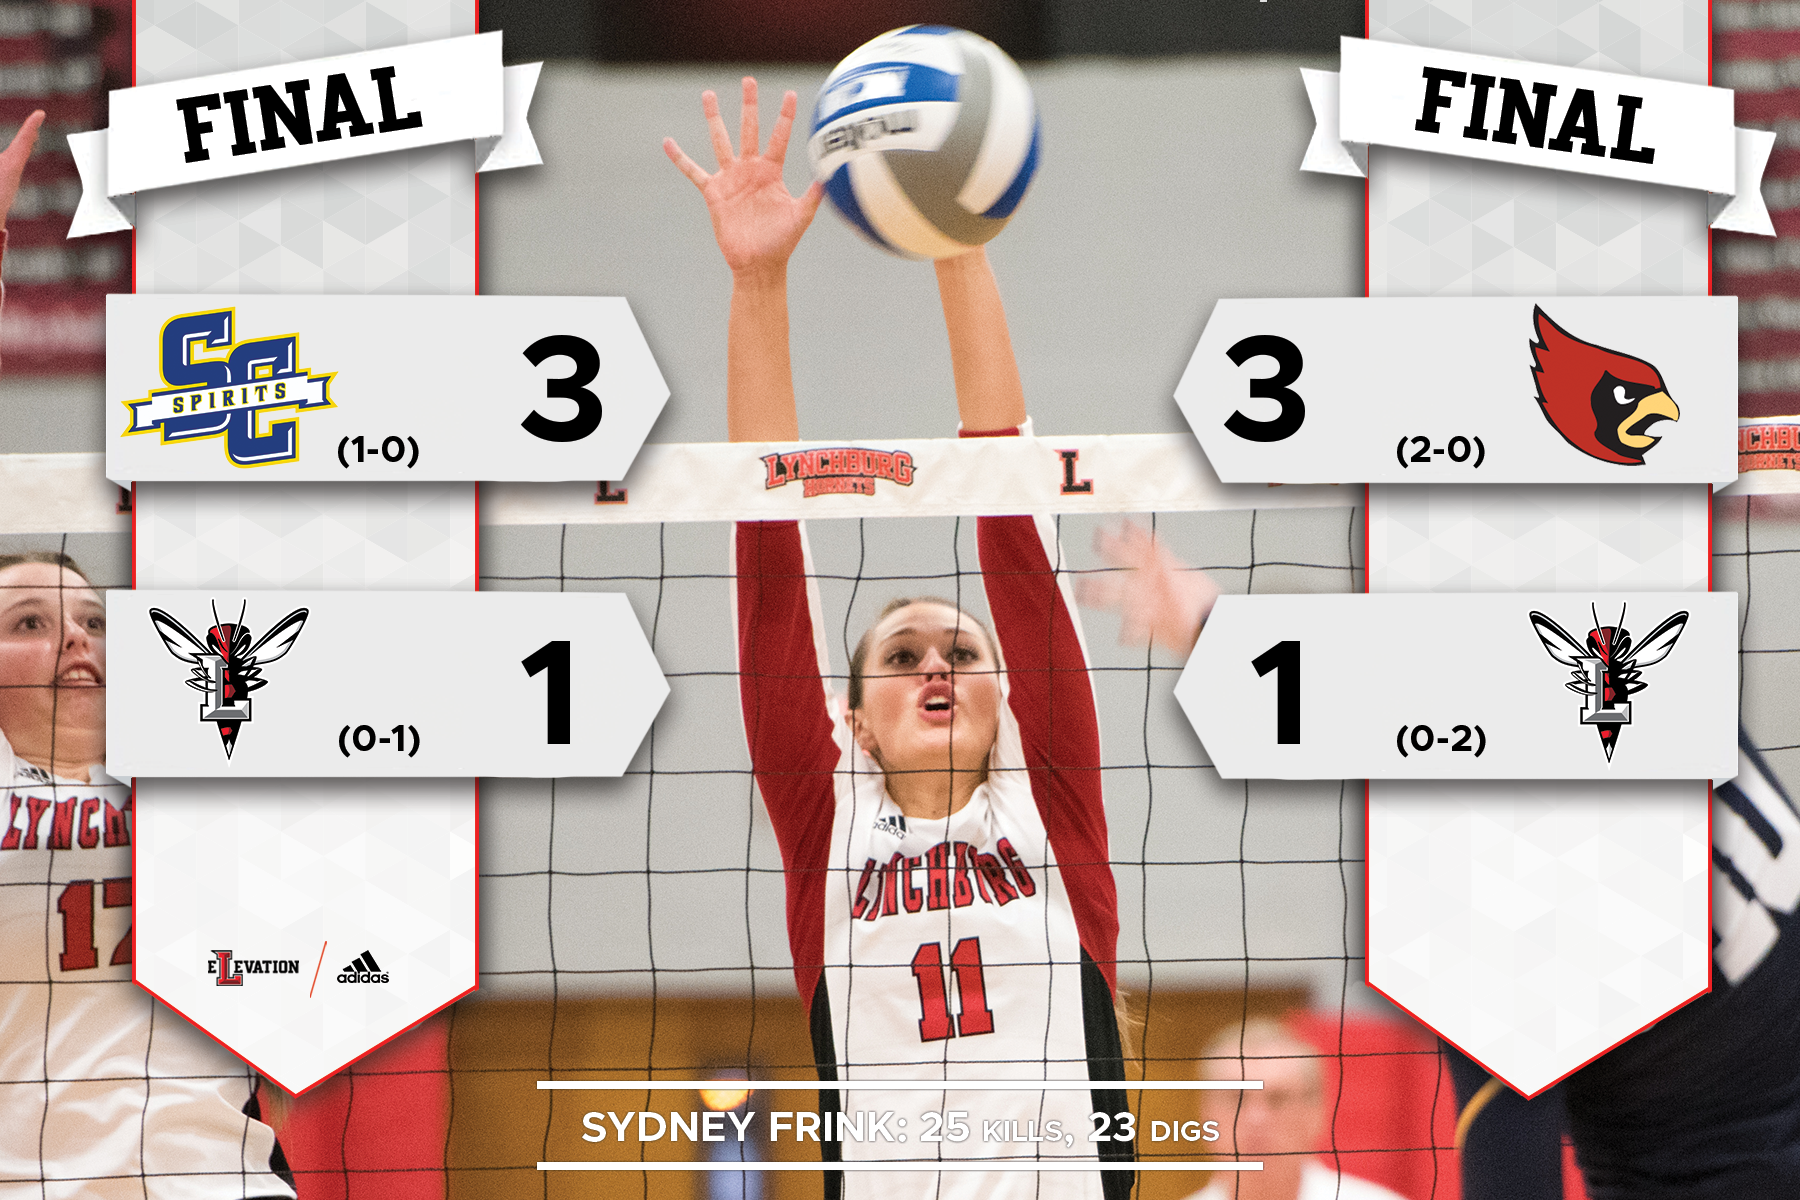 Sydney Frink blocks an attack attempt in a volleyball game. Graphic showing final scores from today's matches.